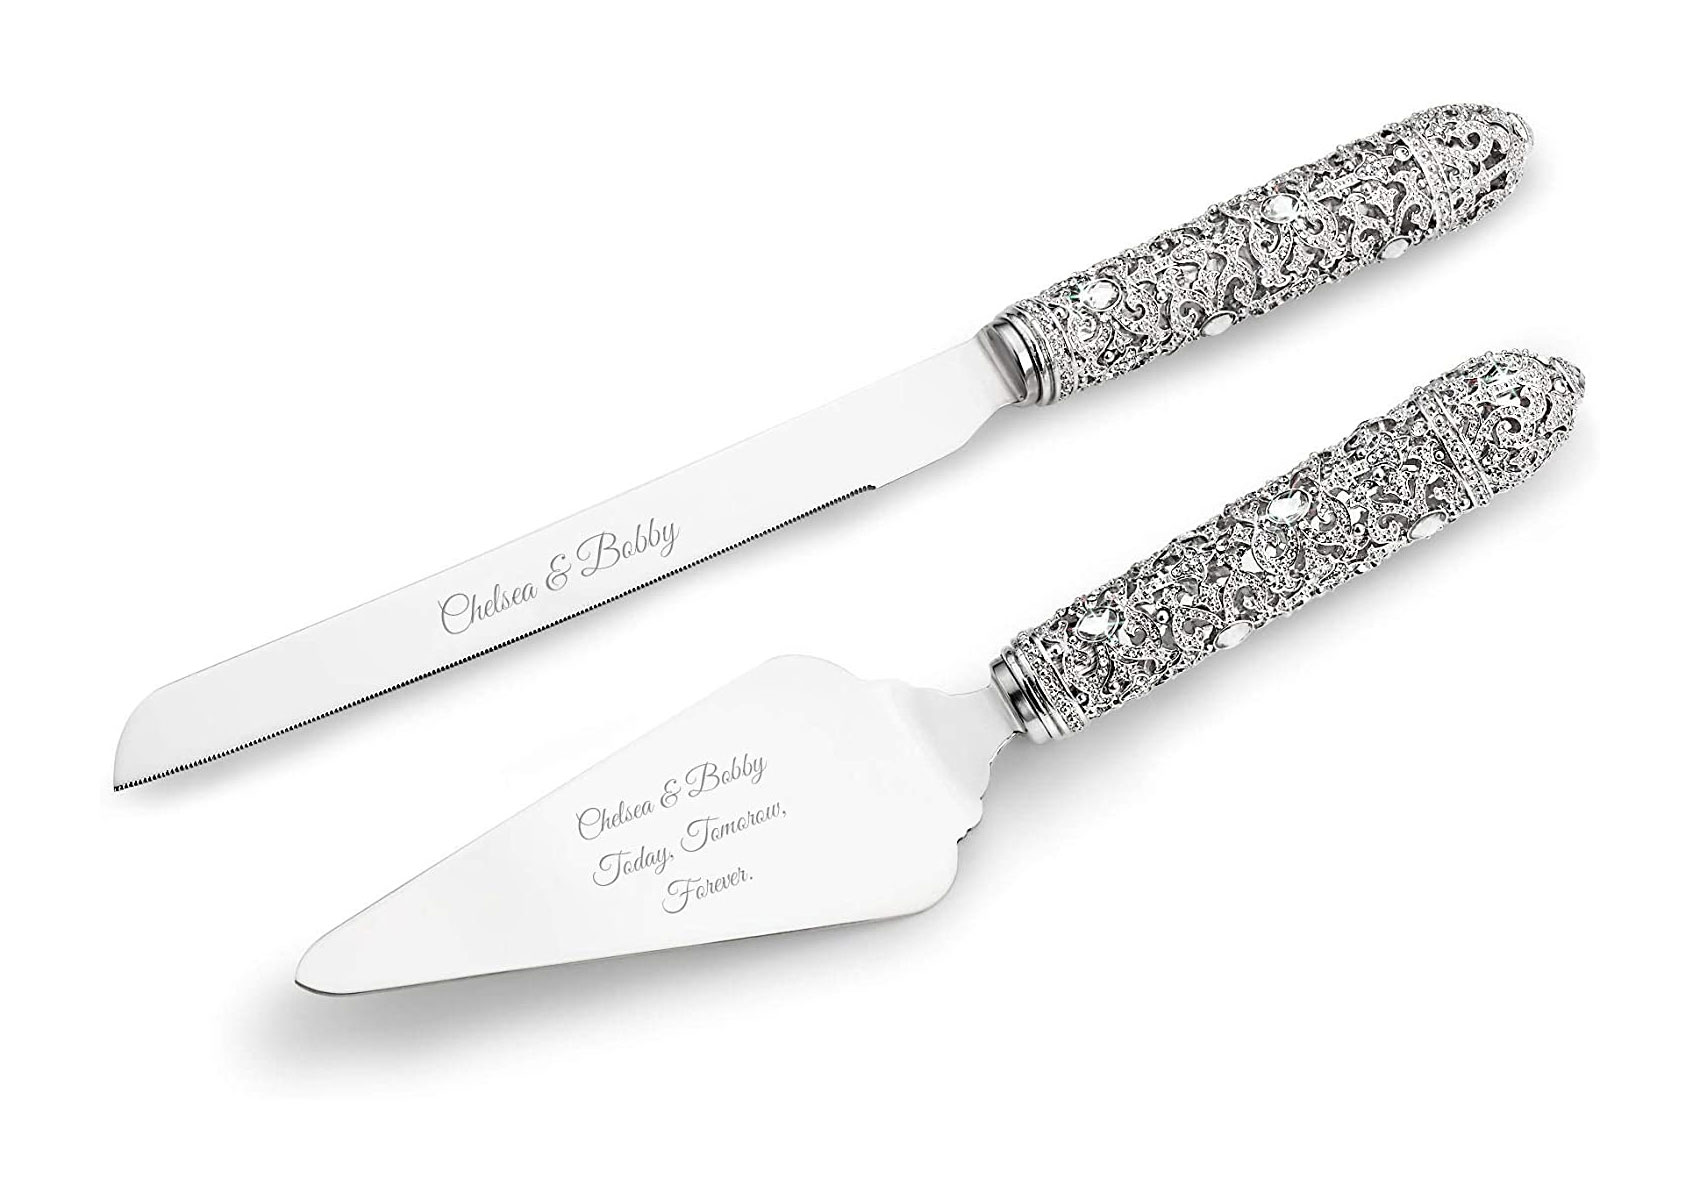 Things Remembered Personalized Fifth Avenue Filigree Cake Server Set with Engraving Included